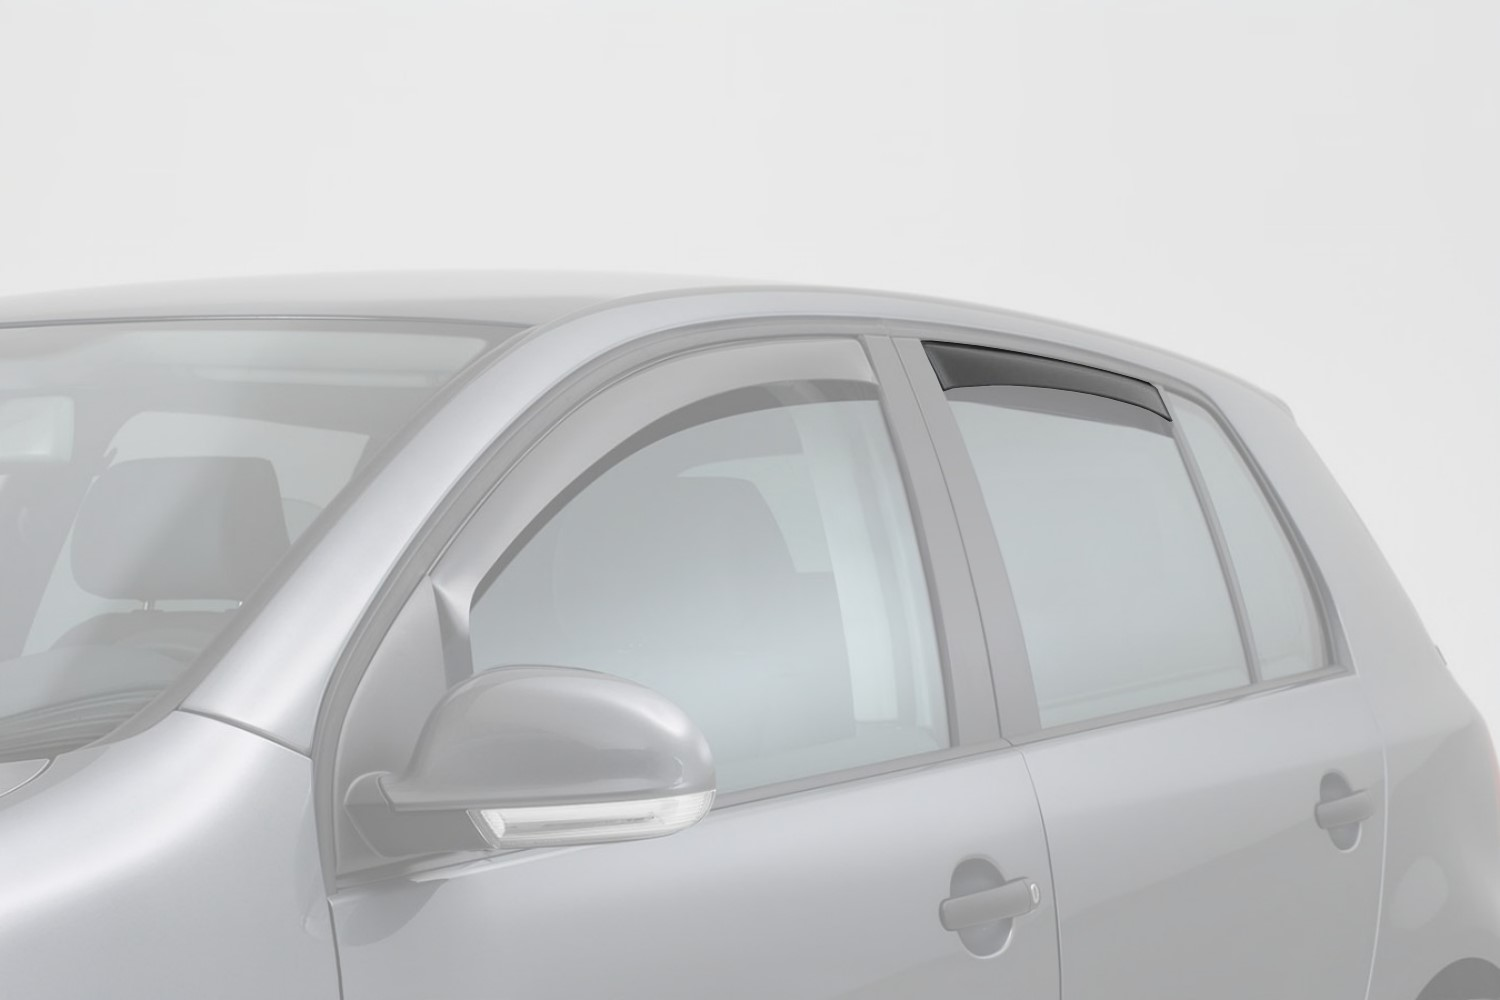 Side window deflectors Toyota Land Cruiser (J200) 2007-present 5-door hatchback rear doors - smoke grey